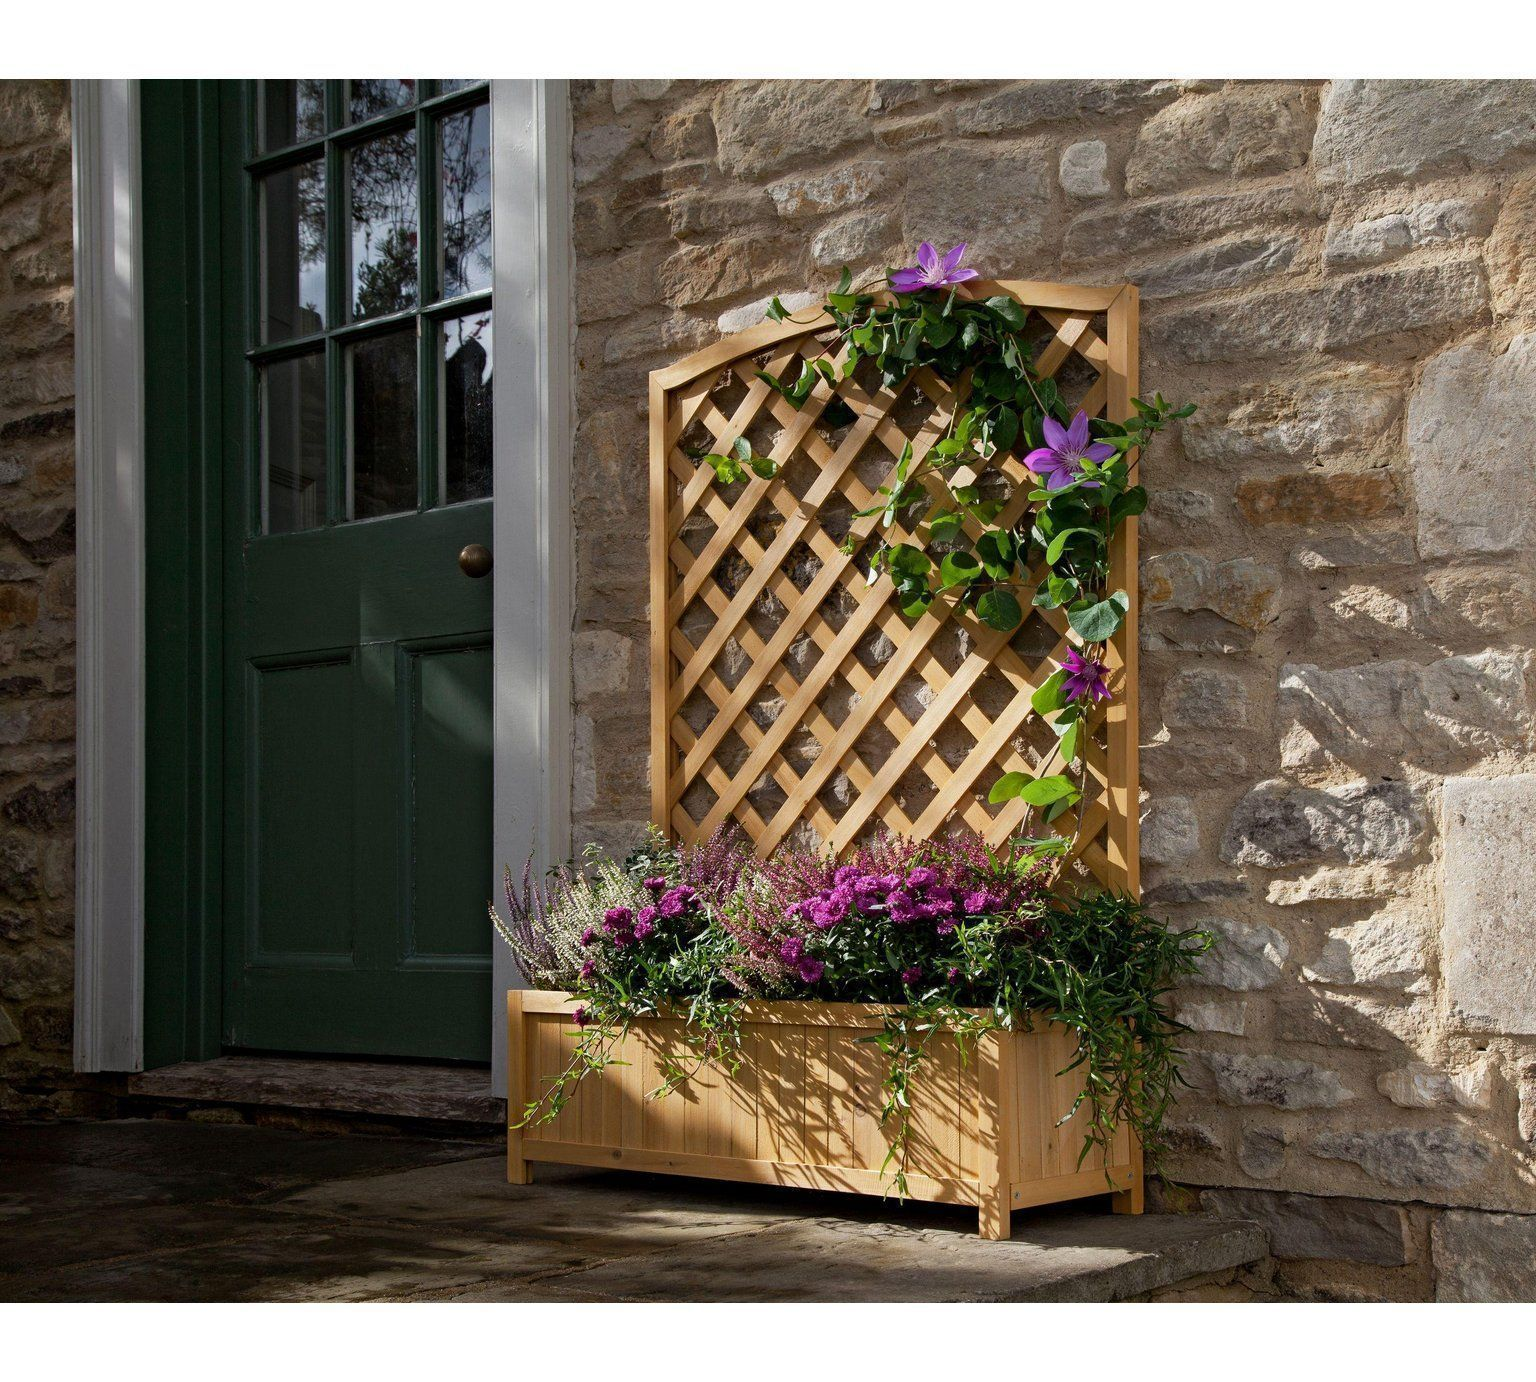 Buy Lattice Wooden Planter - Large at Argos.co.uk, visit Argos.co.uk on wooden bollards, wooden bookends, wooden plows, wooden pedestals, wooden decking, wooden bird houses, wooden troughs, wooden home, wooden garden, wooden trellis, wooden toys, wooden arbors, wooden bird feeders, wooden rakes, wooden greenhouses, wooden plates, wooden bells, wooden benches, wooden chairs, wooden pavers,